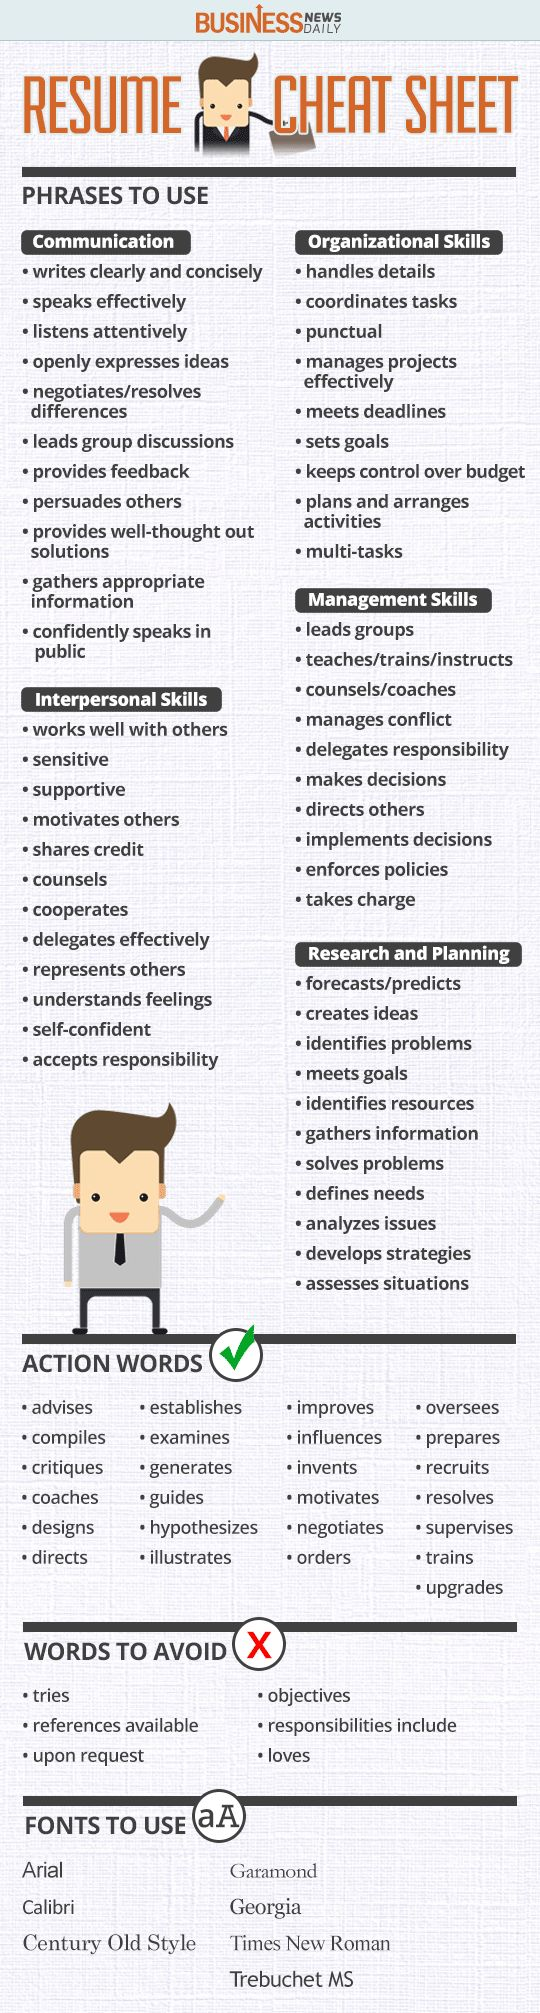 Opposenewapstandardsus  Stunning  Ideas About Resume On Pinterest  Cv Format Resume Cv And  With Exciting Resume Cheat Sheet Infographic Andrews Almost Done With A Complete Unit On Employment Which With Enchanting High School Student Resume With No Work Experience Also Resume Cover Page Template In Addition Build Resume Free And What Is The Difference Between A Cv And A Resume As Well As Busser Resume Additionally Sales Executive Resume From Pinterestcom With Opposenewapstandardsus  Exciting  Ideas About Resume On Pinterest  Cv Format Resume Cv And  With Enchanting Resume Cheat Sheet Infographic Andrews Almost Done With A Complete Unit On Employment Which And Stunning High School Student Resume With No Work Experience Also Resume Cover Page Template In Addition Build Resume Free From Pinterestcom